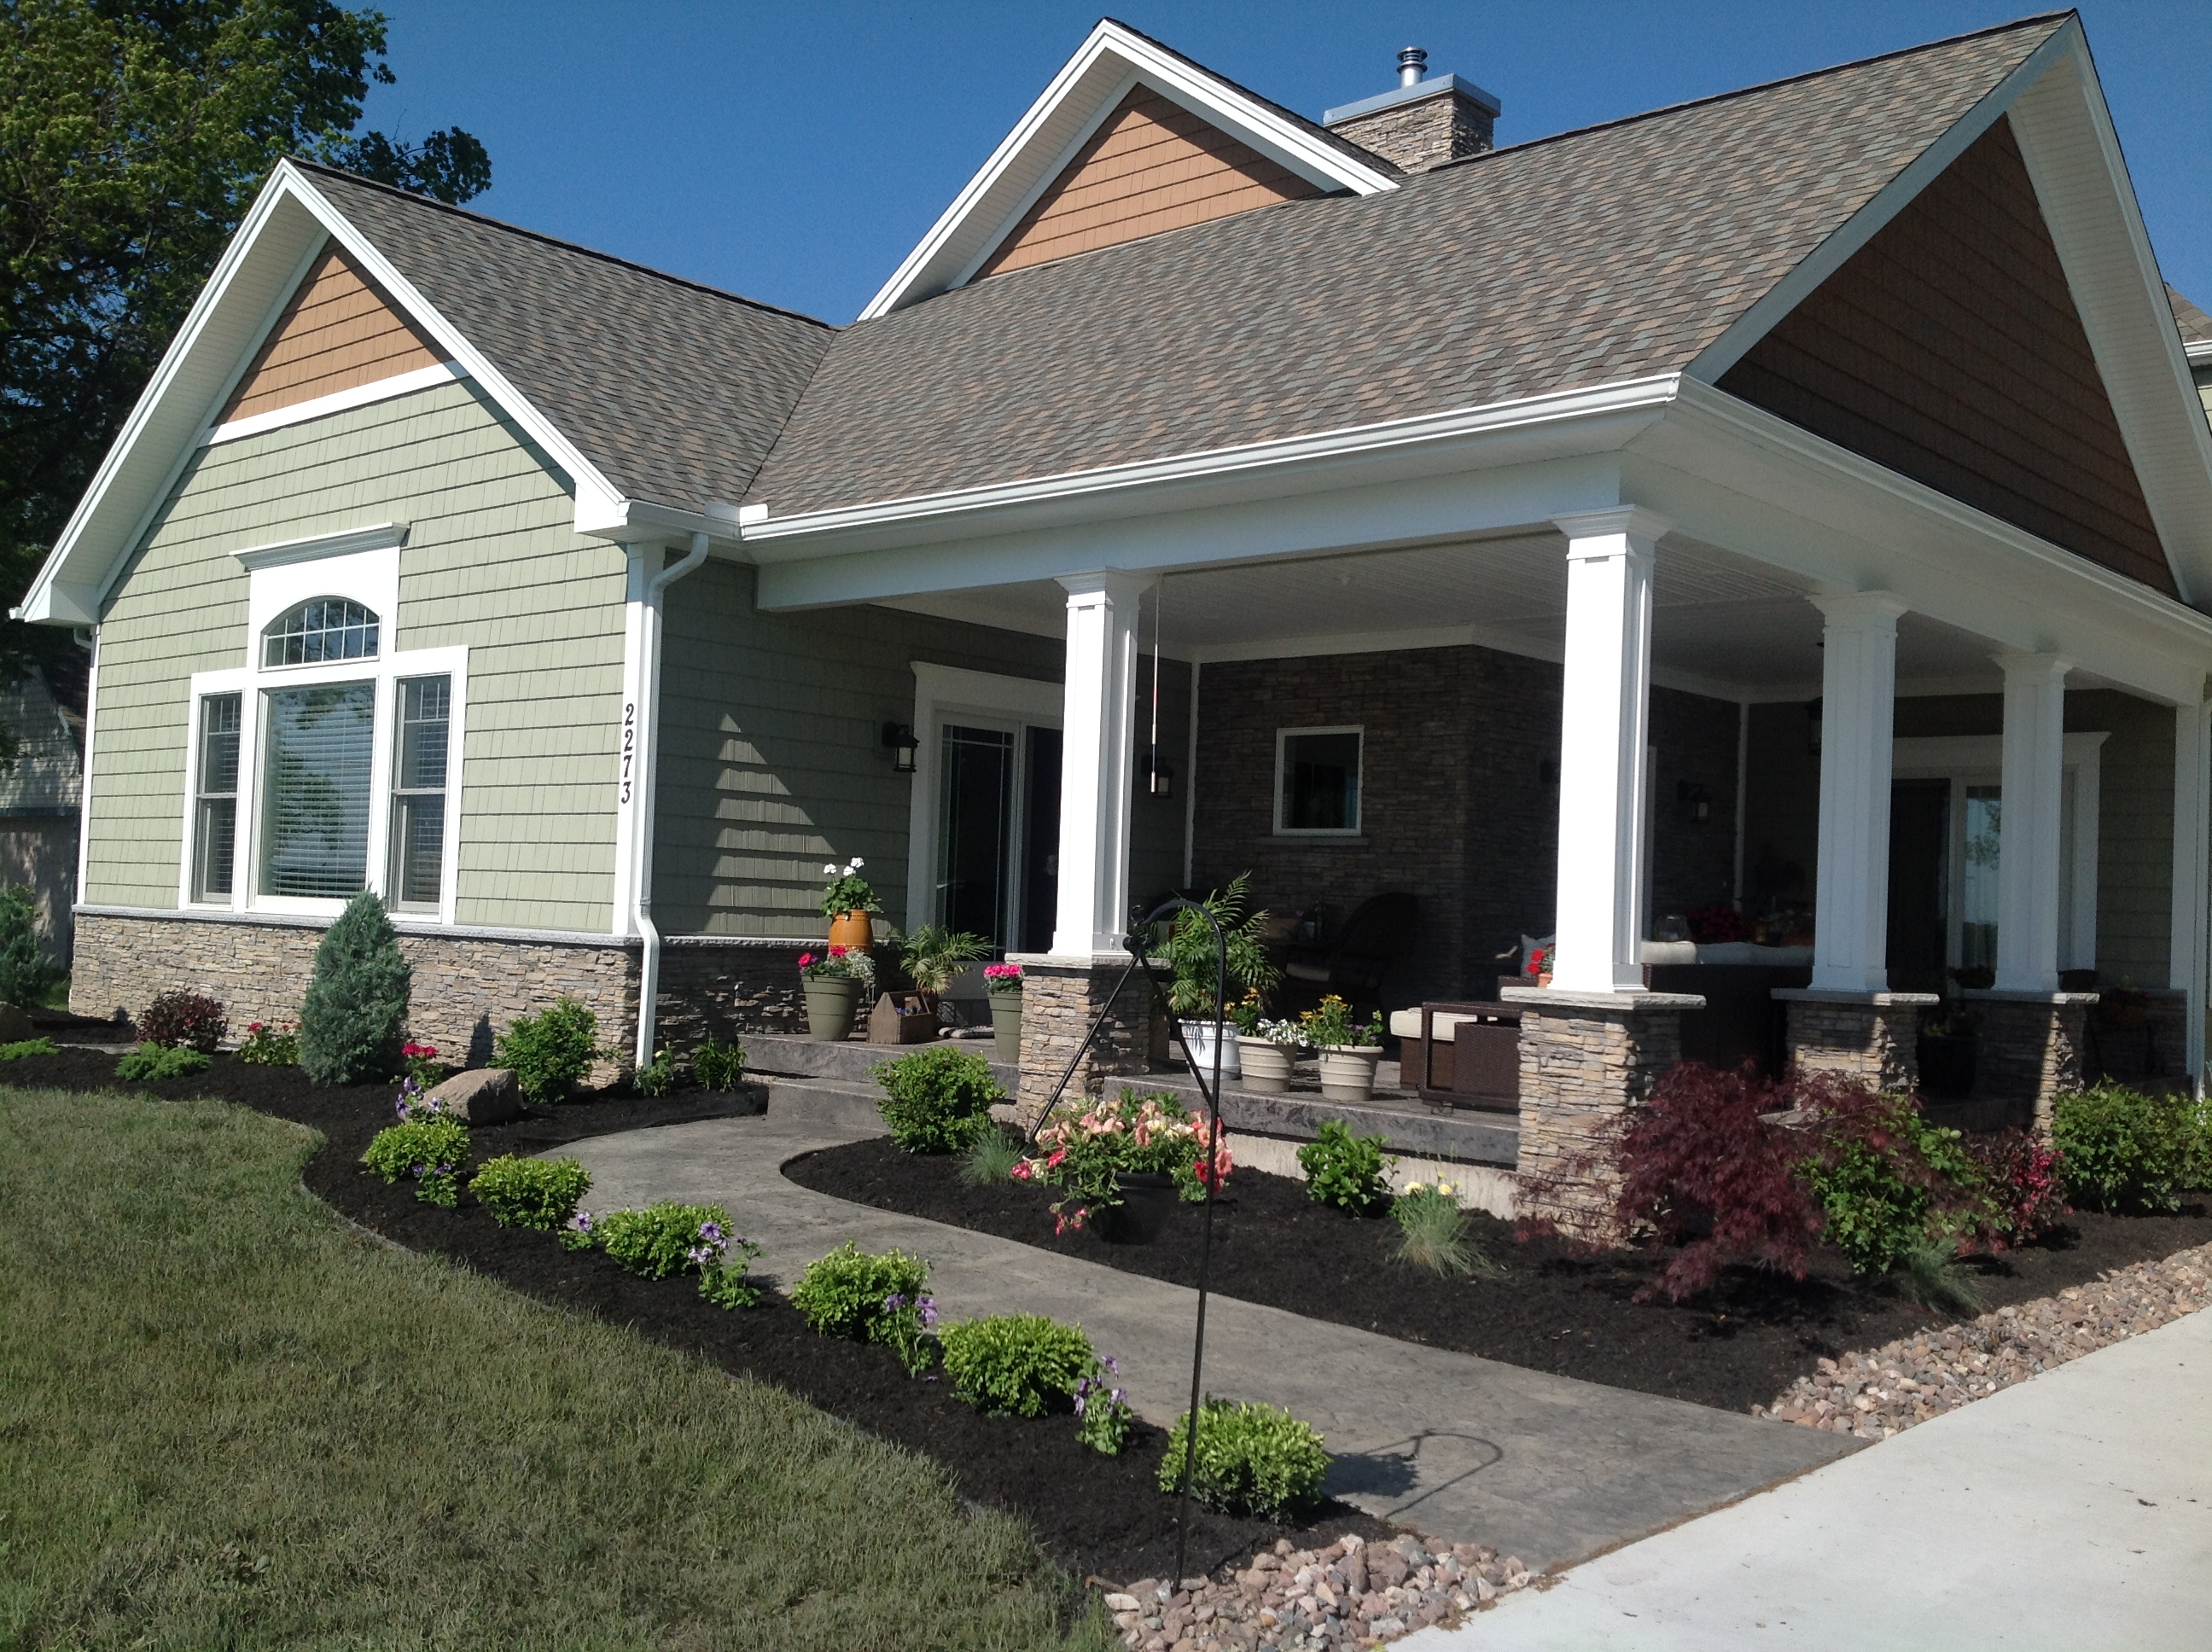 A Best Inc North Tonawanda NY Roofing And Siding Contractor